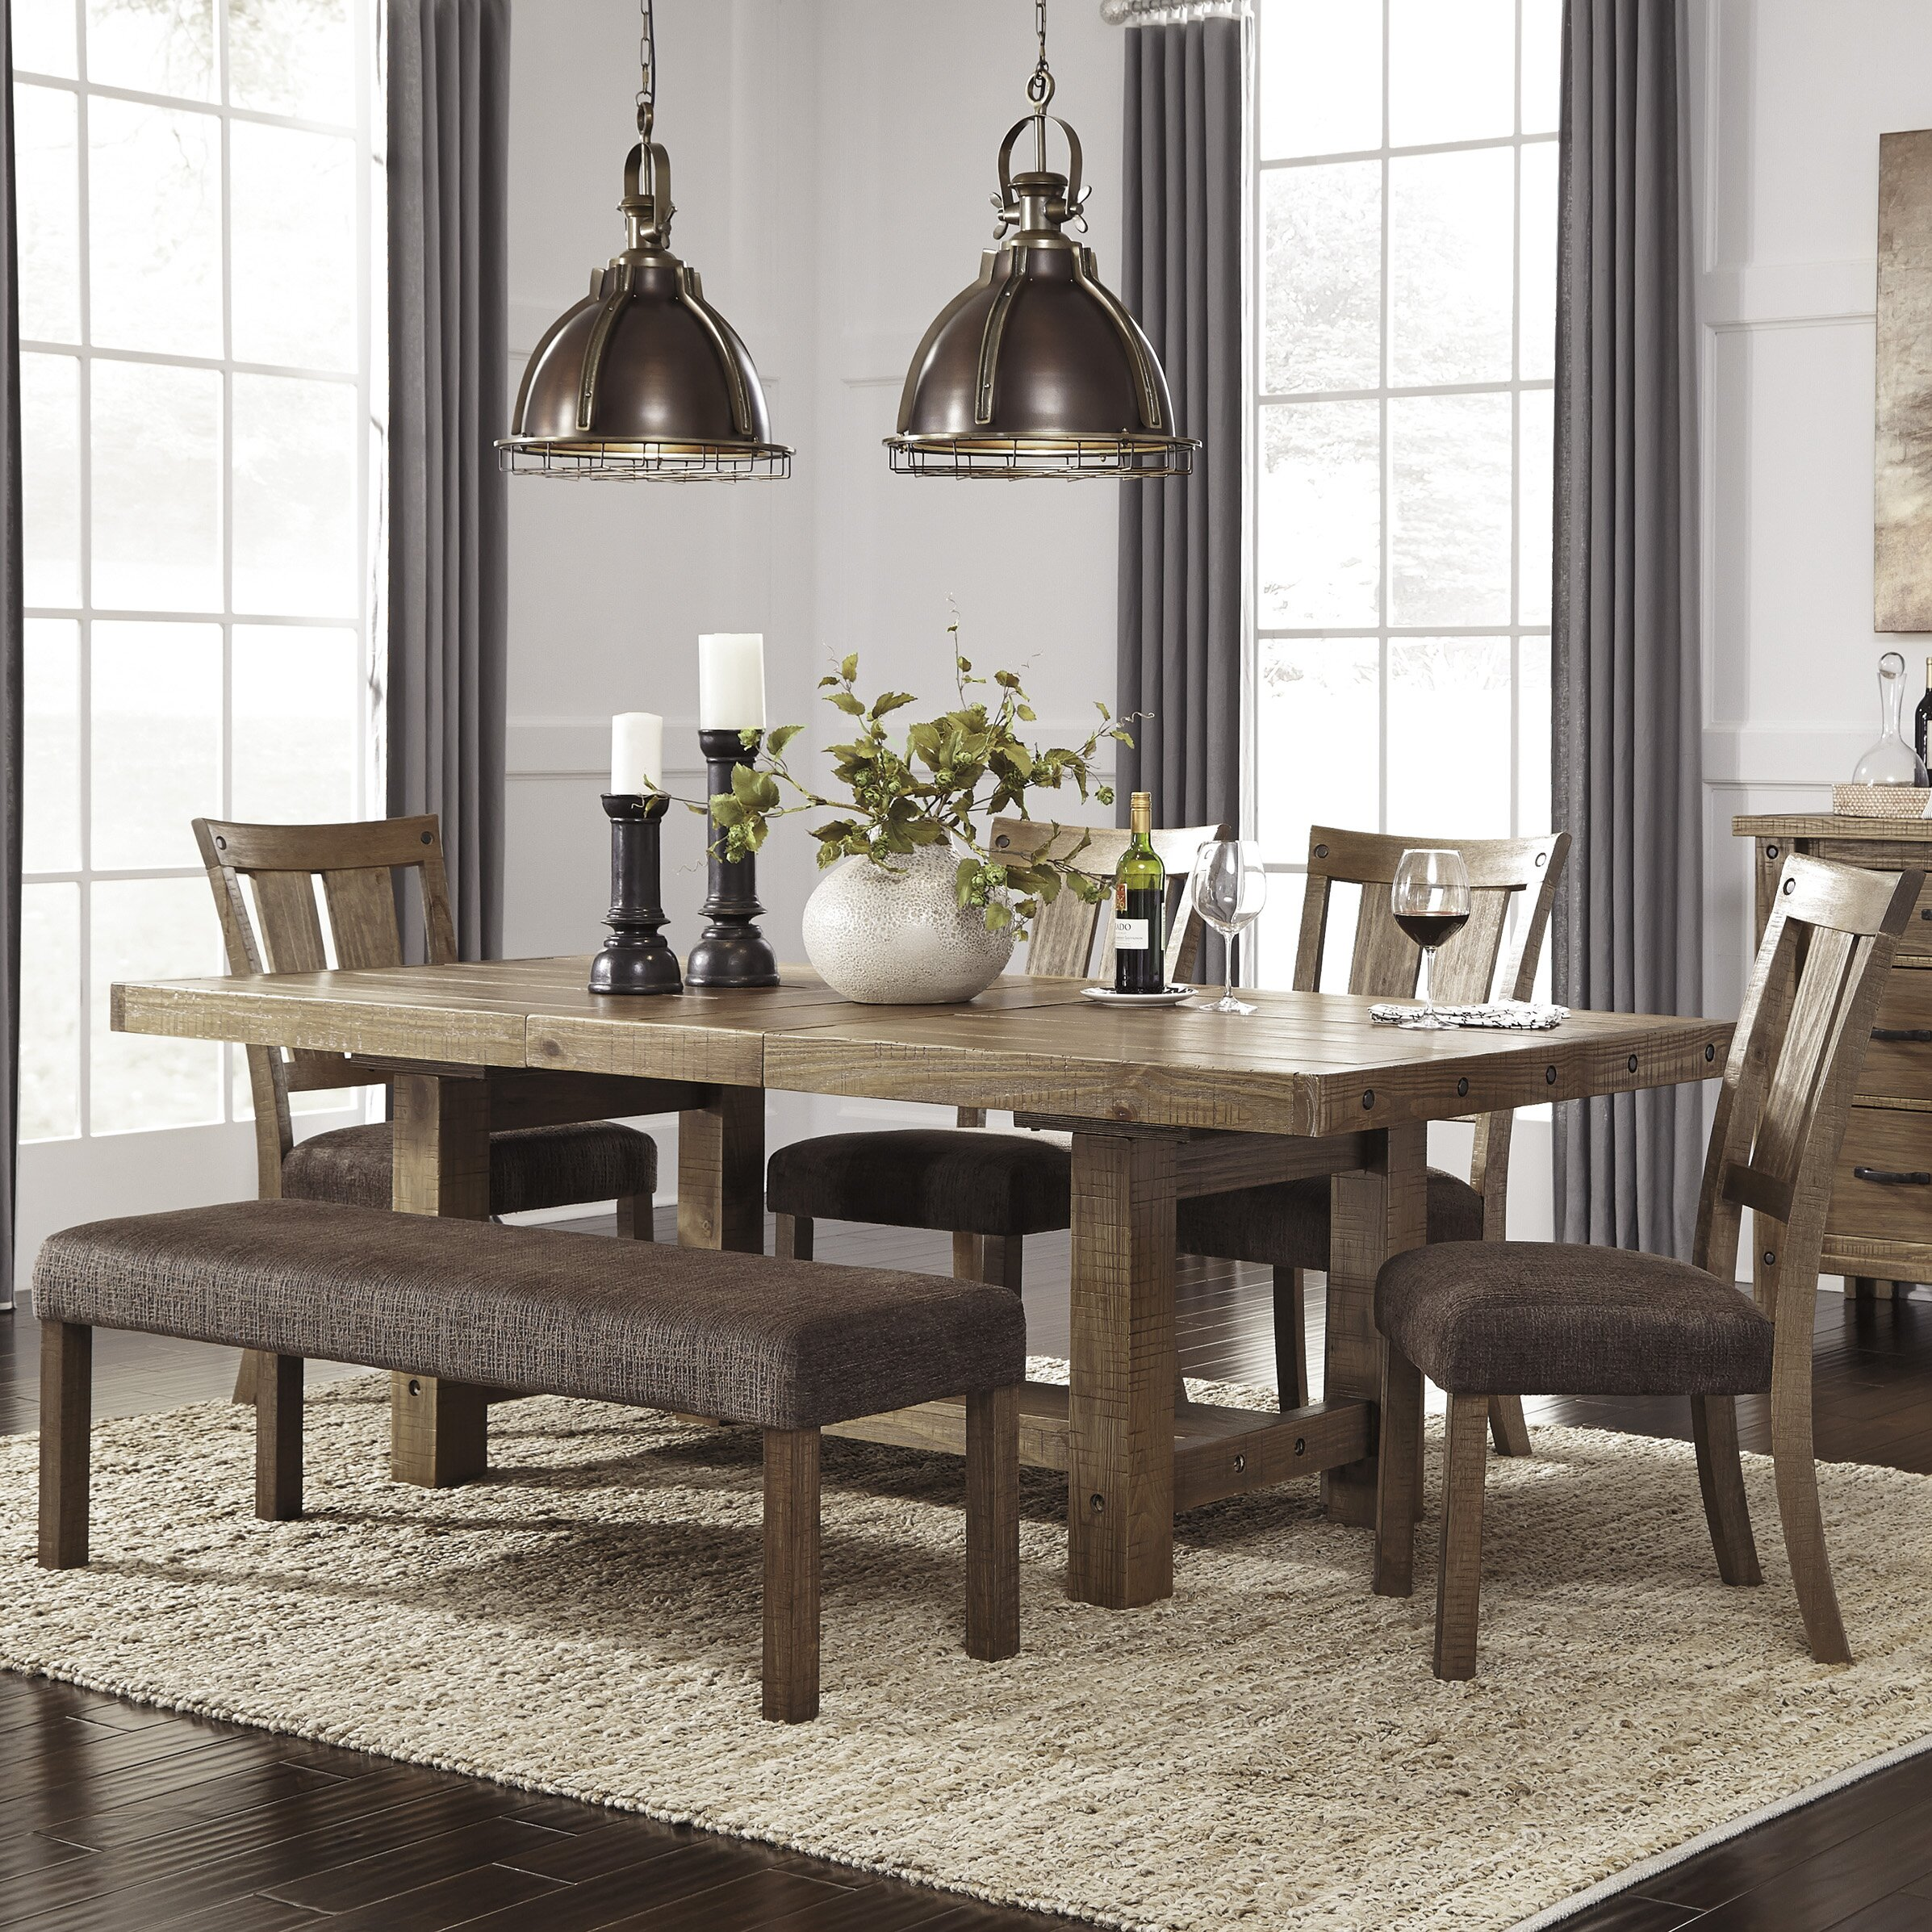 Signature Design by Ashley 9 Piece Dining Set & Reviews ...